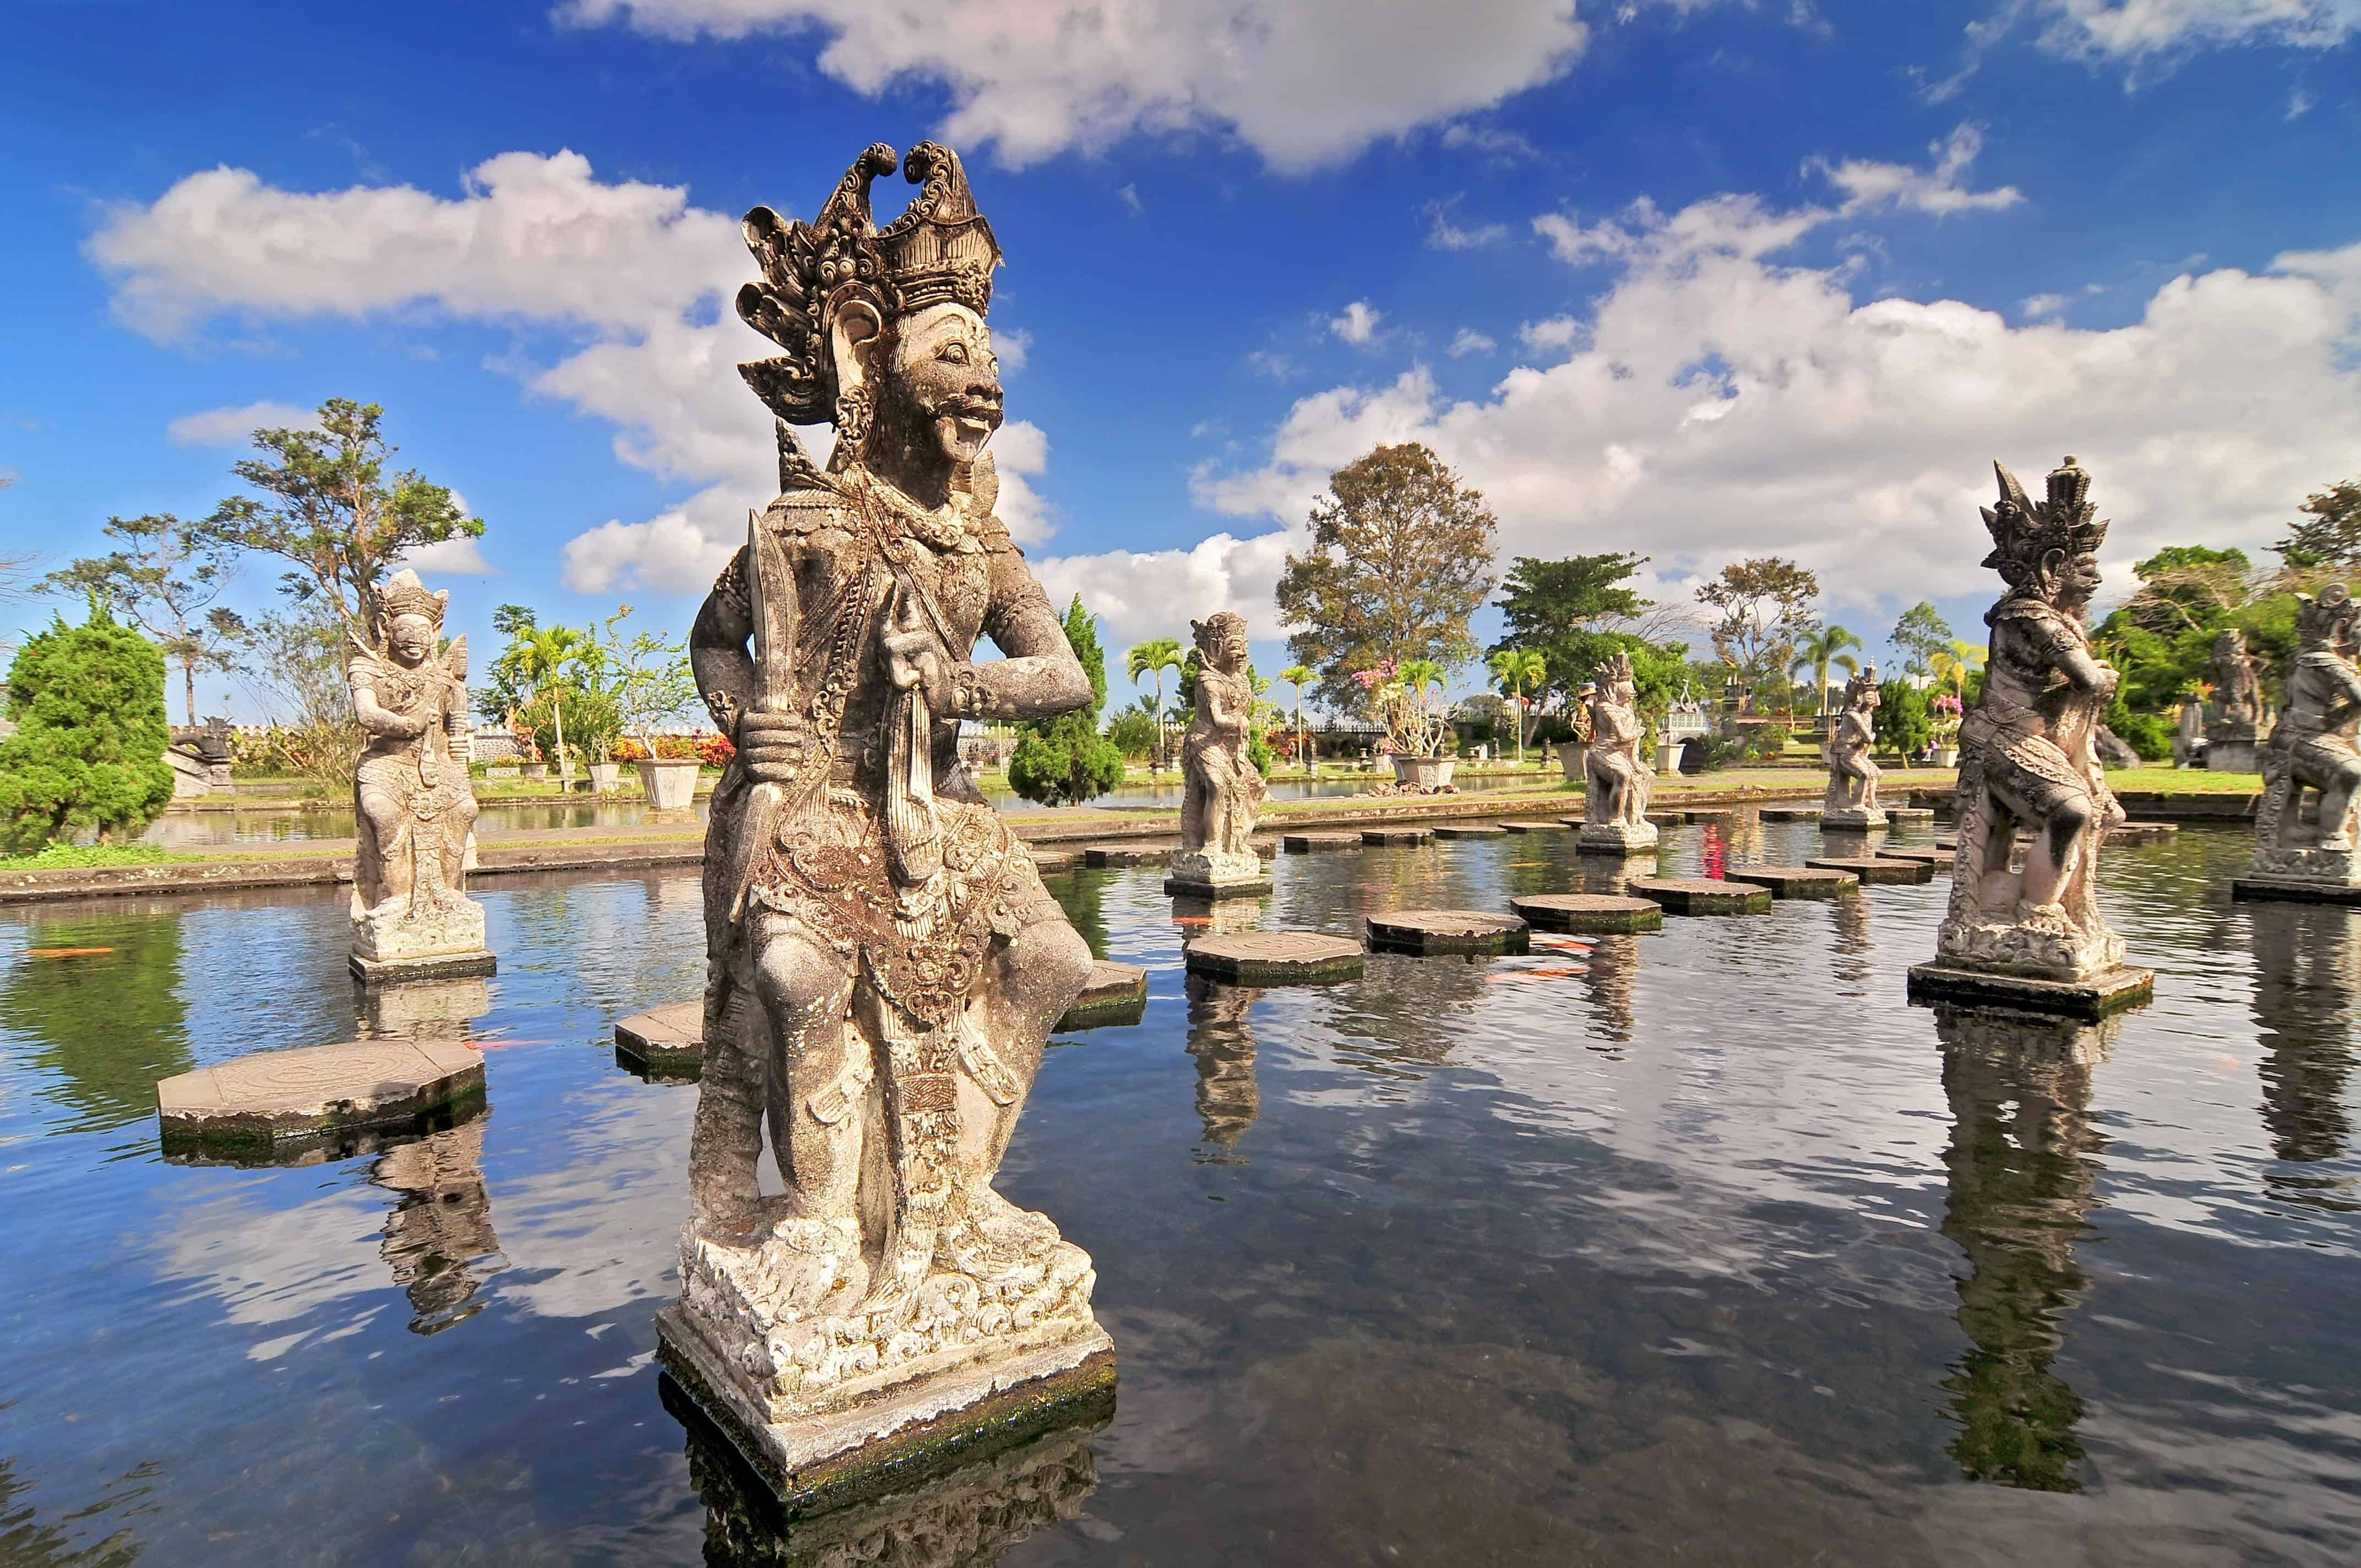 Bali | The Evocative Tourist Islands